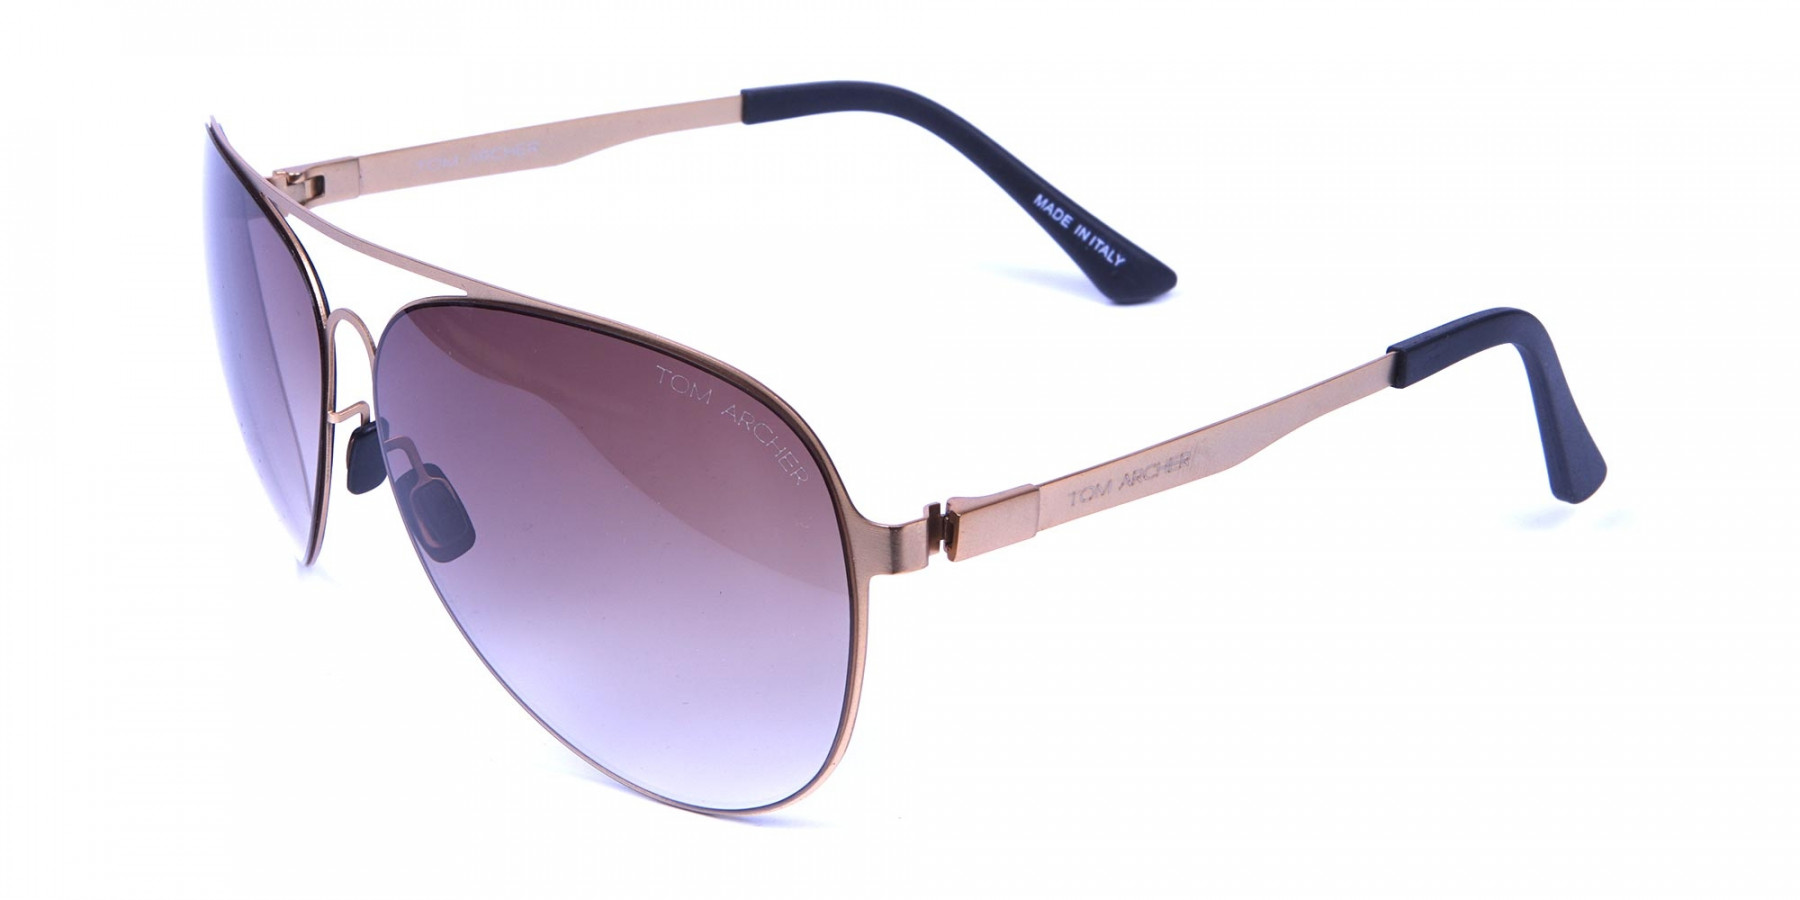 Brown & Gold Avatar Sunglasses -2